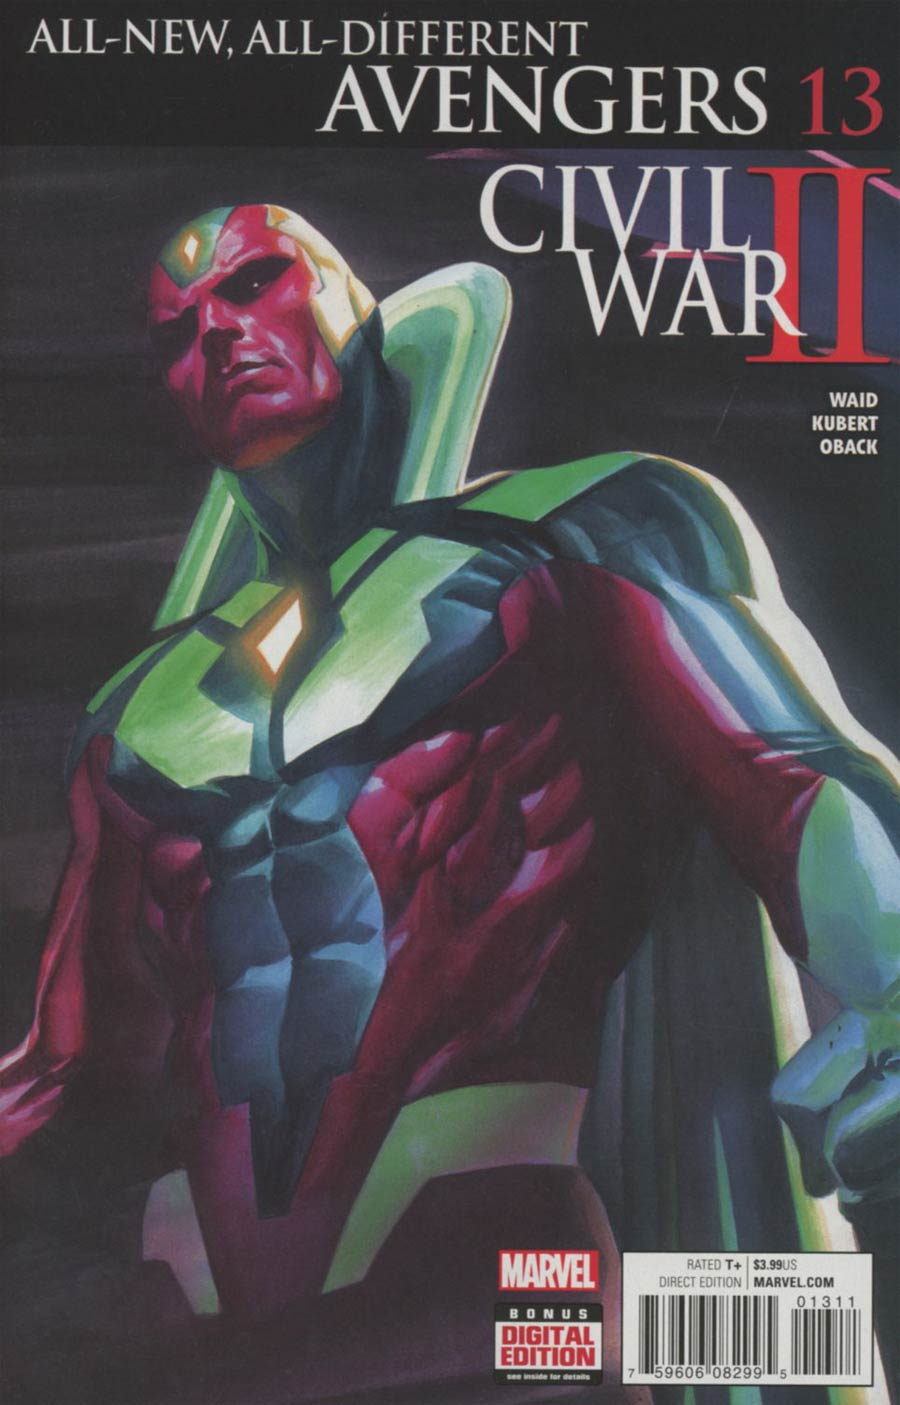 All-New All-Different Avengers #13 Cover A Regular Alex Ross Linking 1 Cover (Civil War II Tie-In)